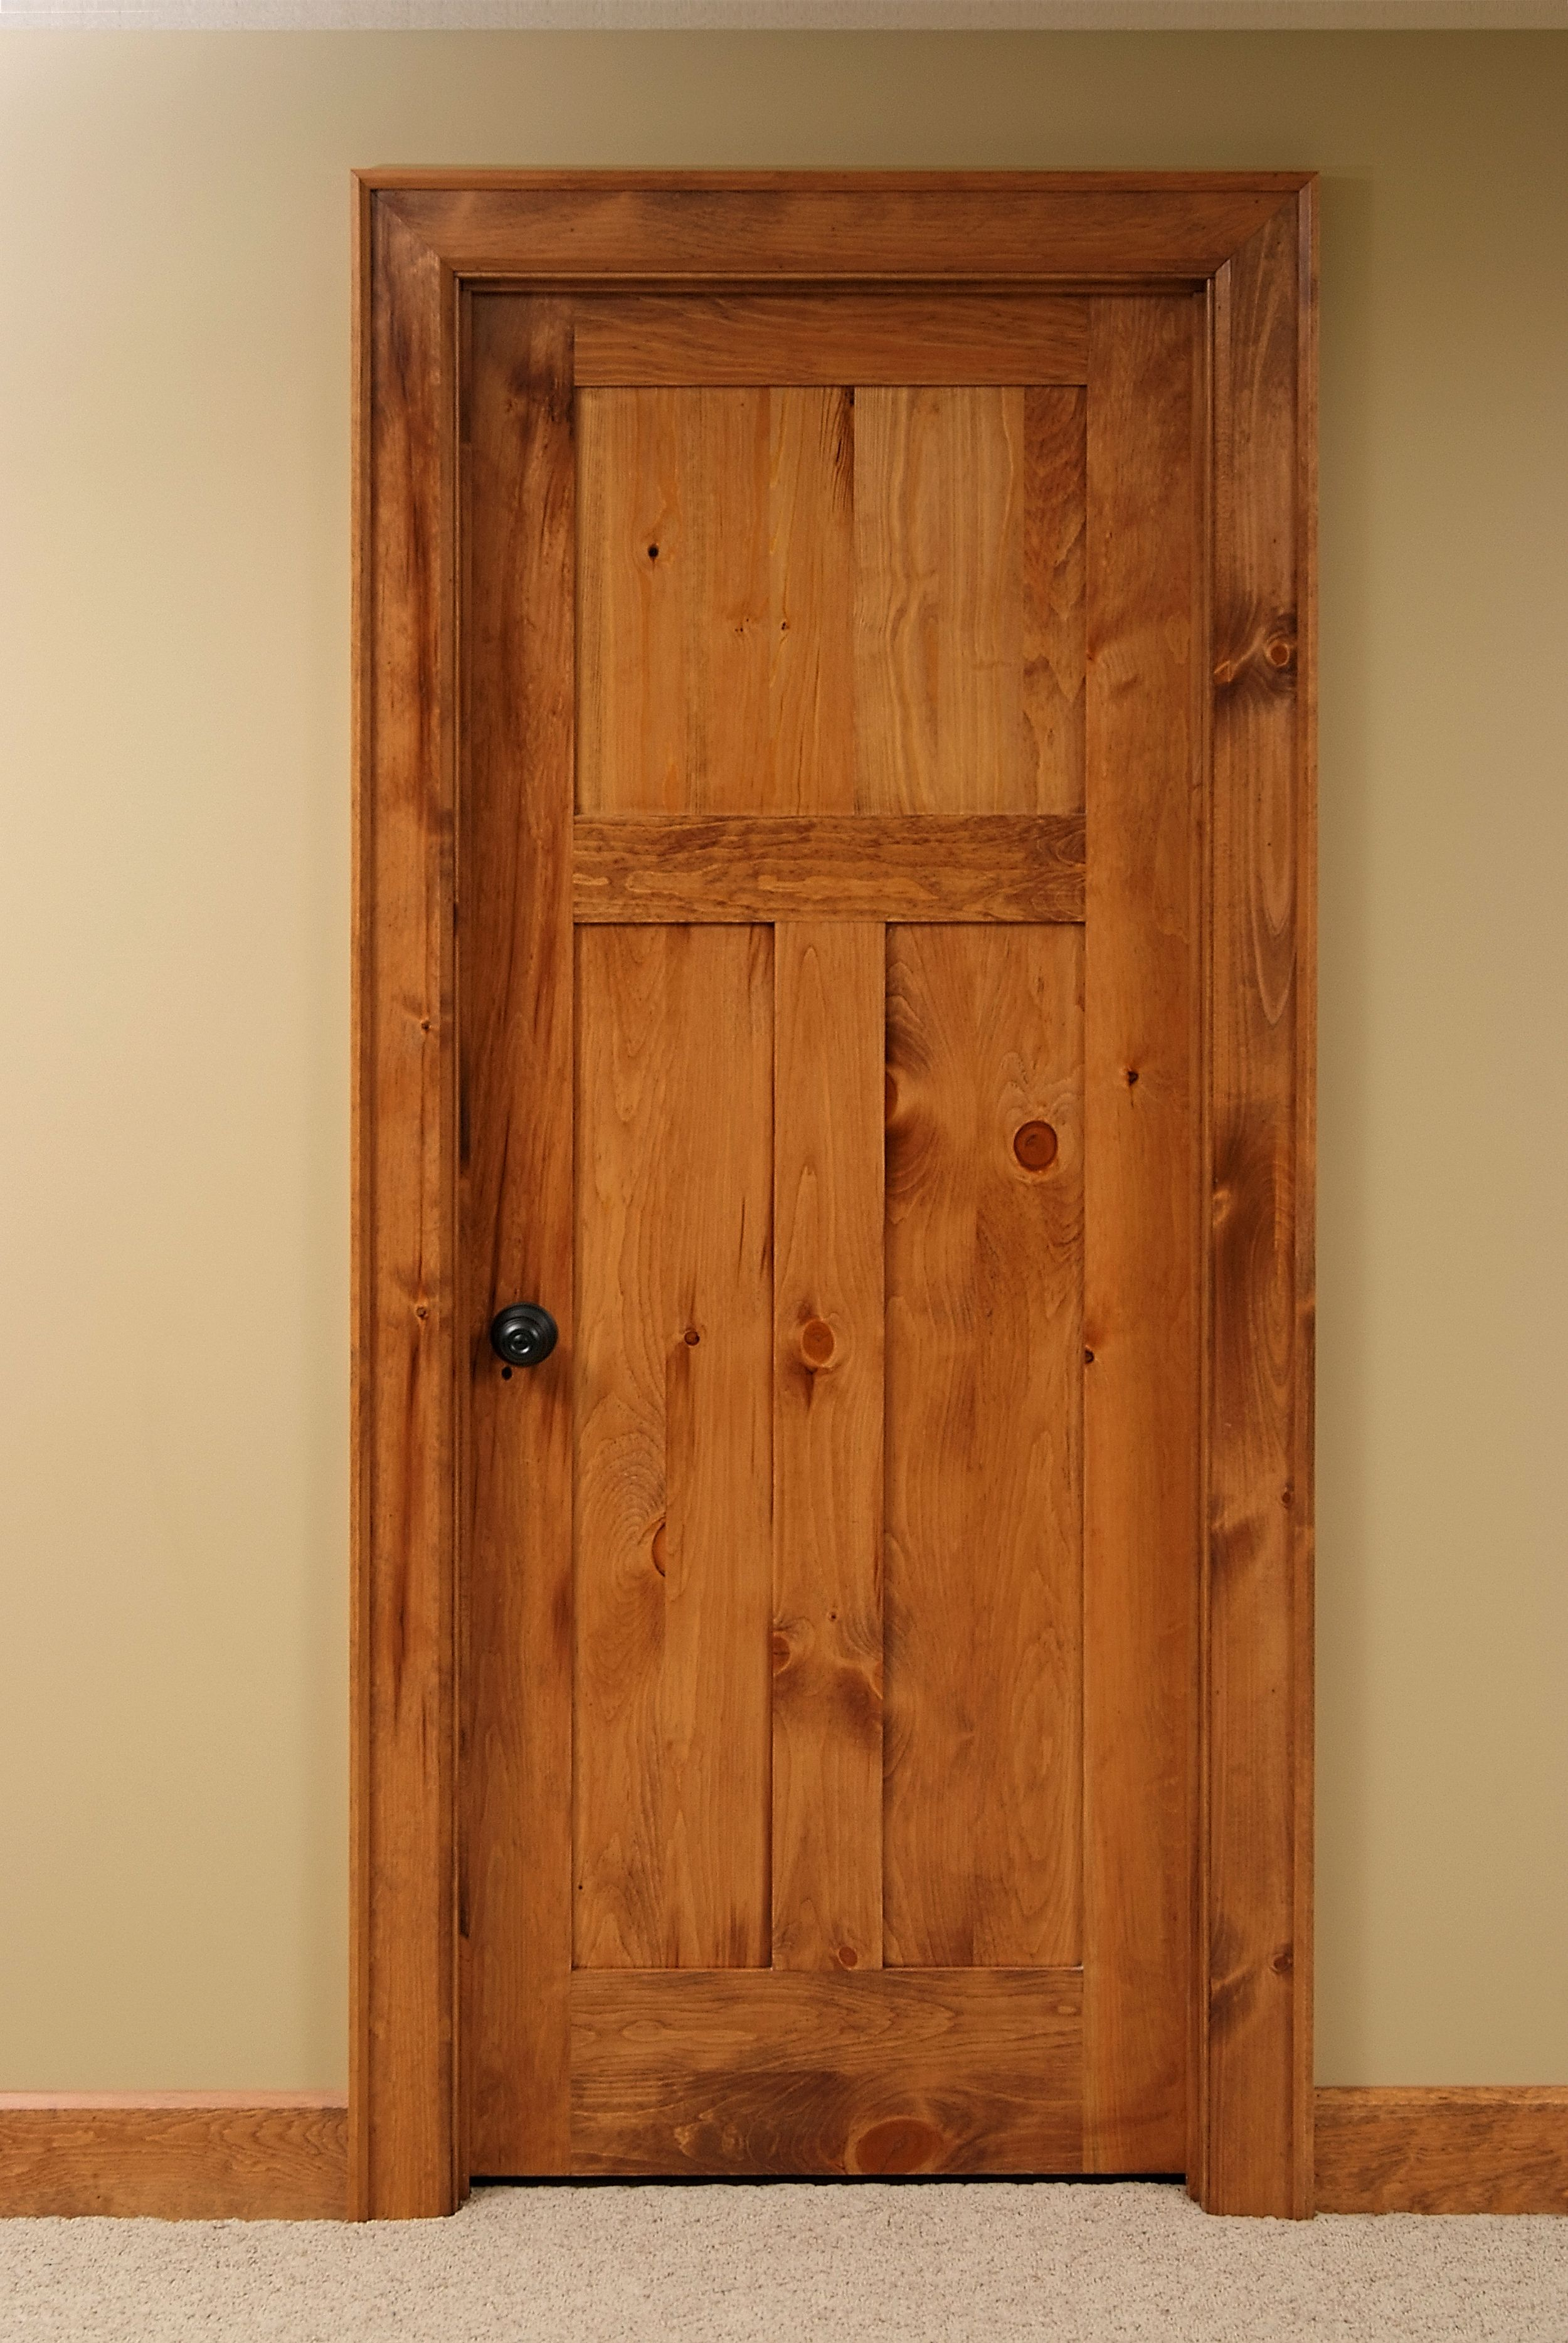 High Quality Shaker Style 3 Panel Knotty Pine Interior Door.